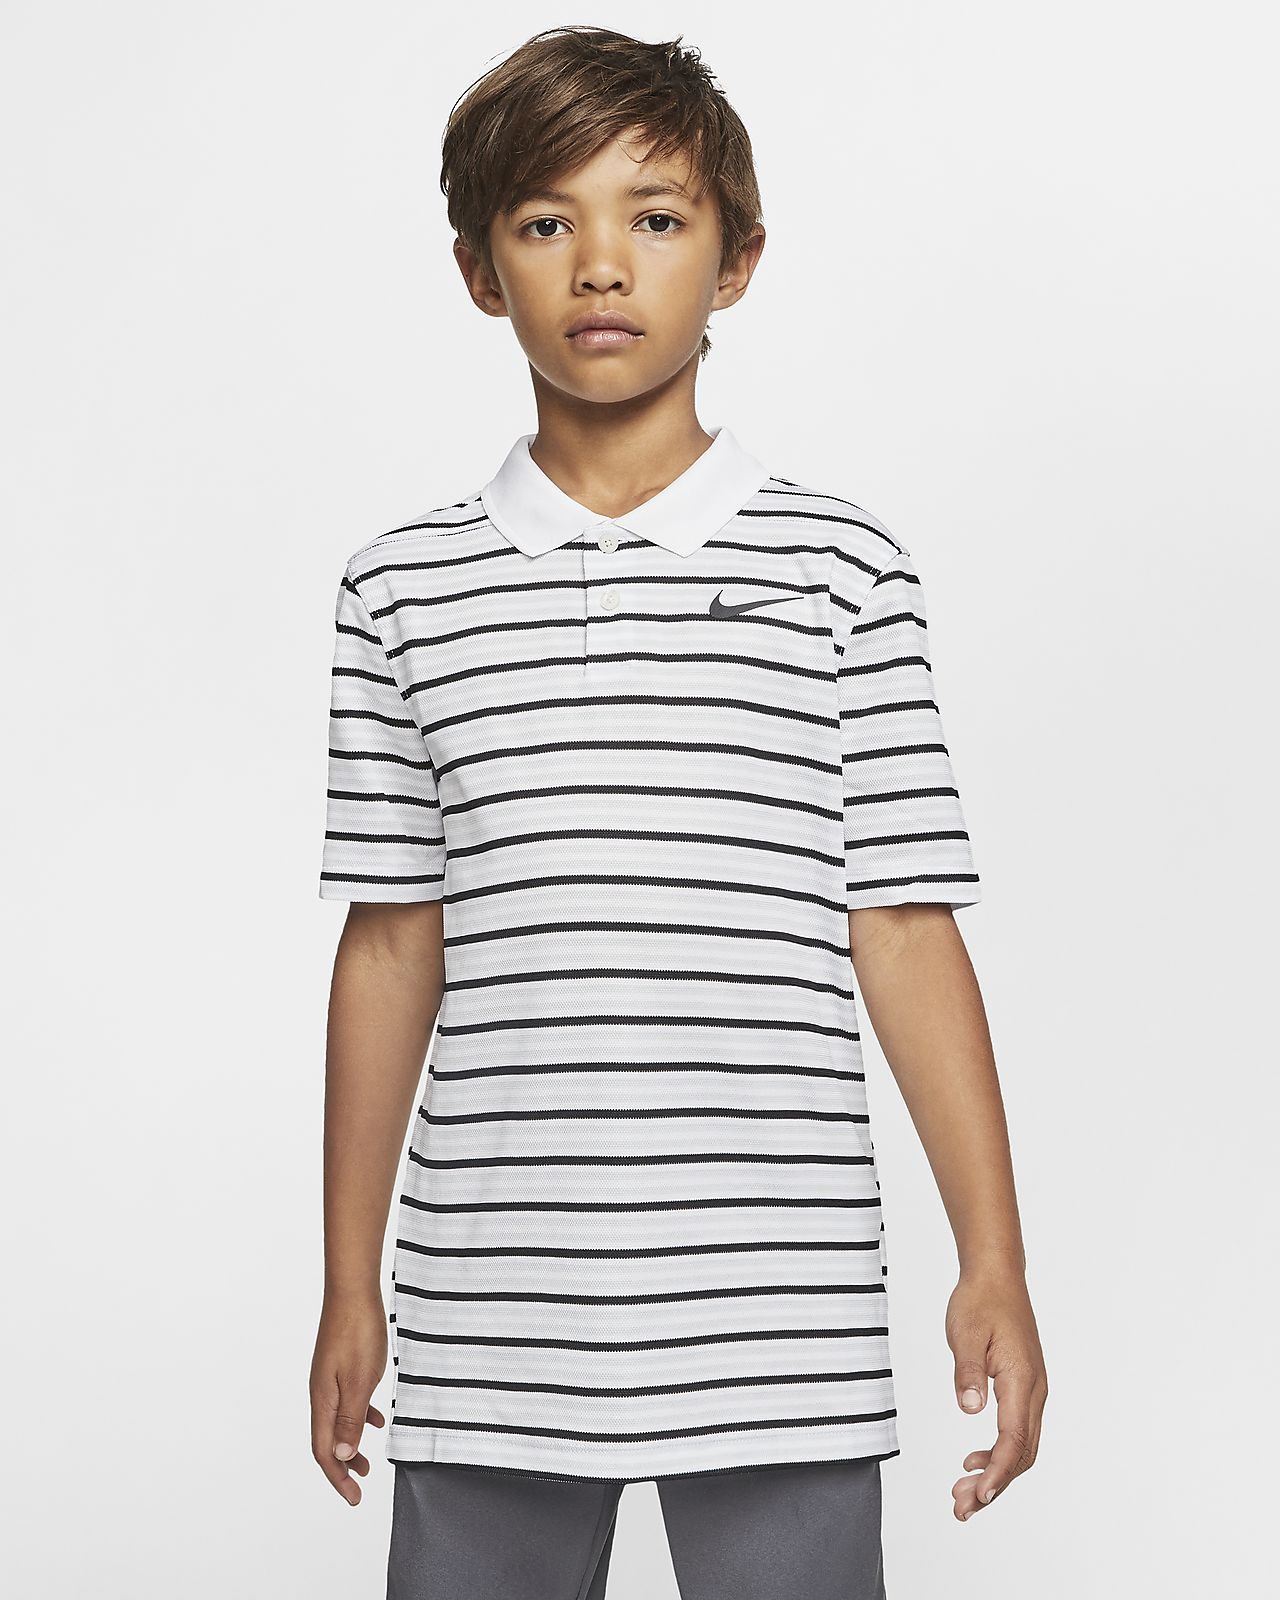 Nike Dri-FIT Victory Boys' Striped Golf Polo